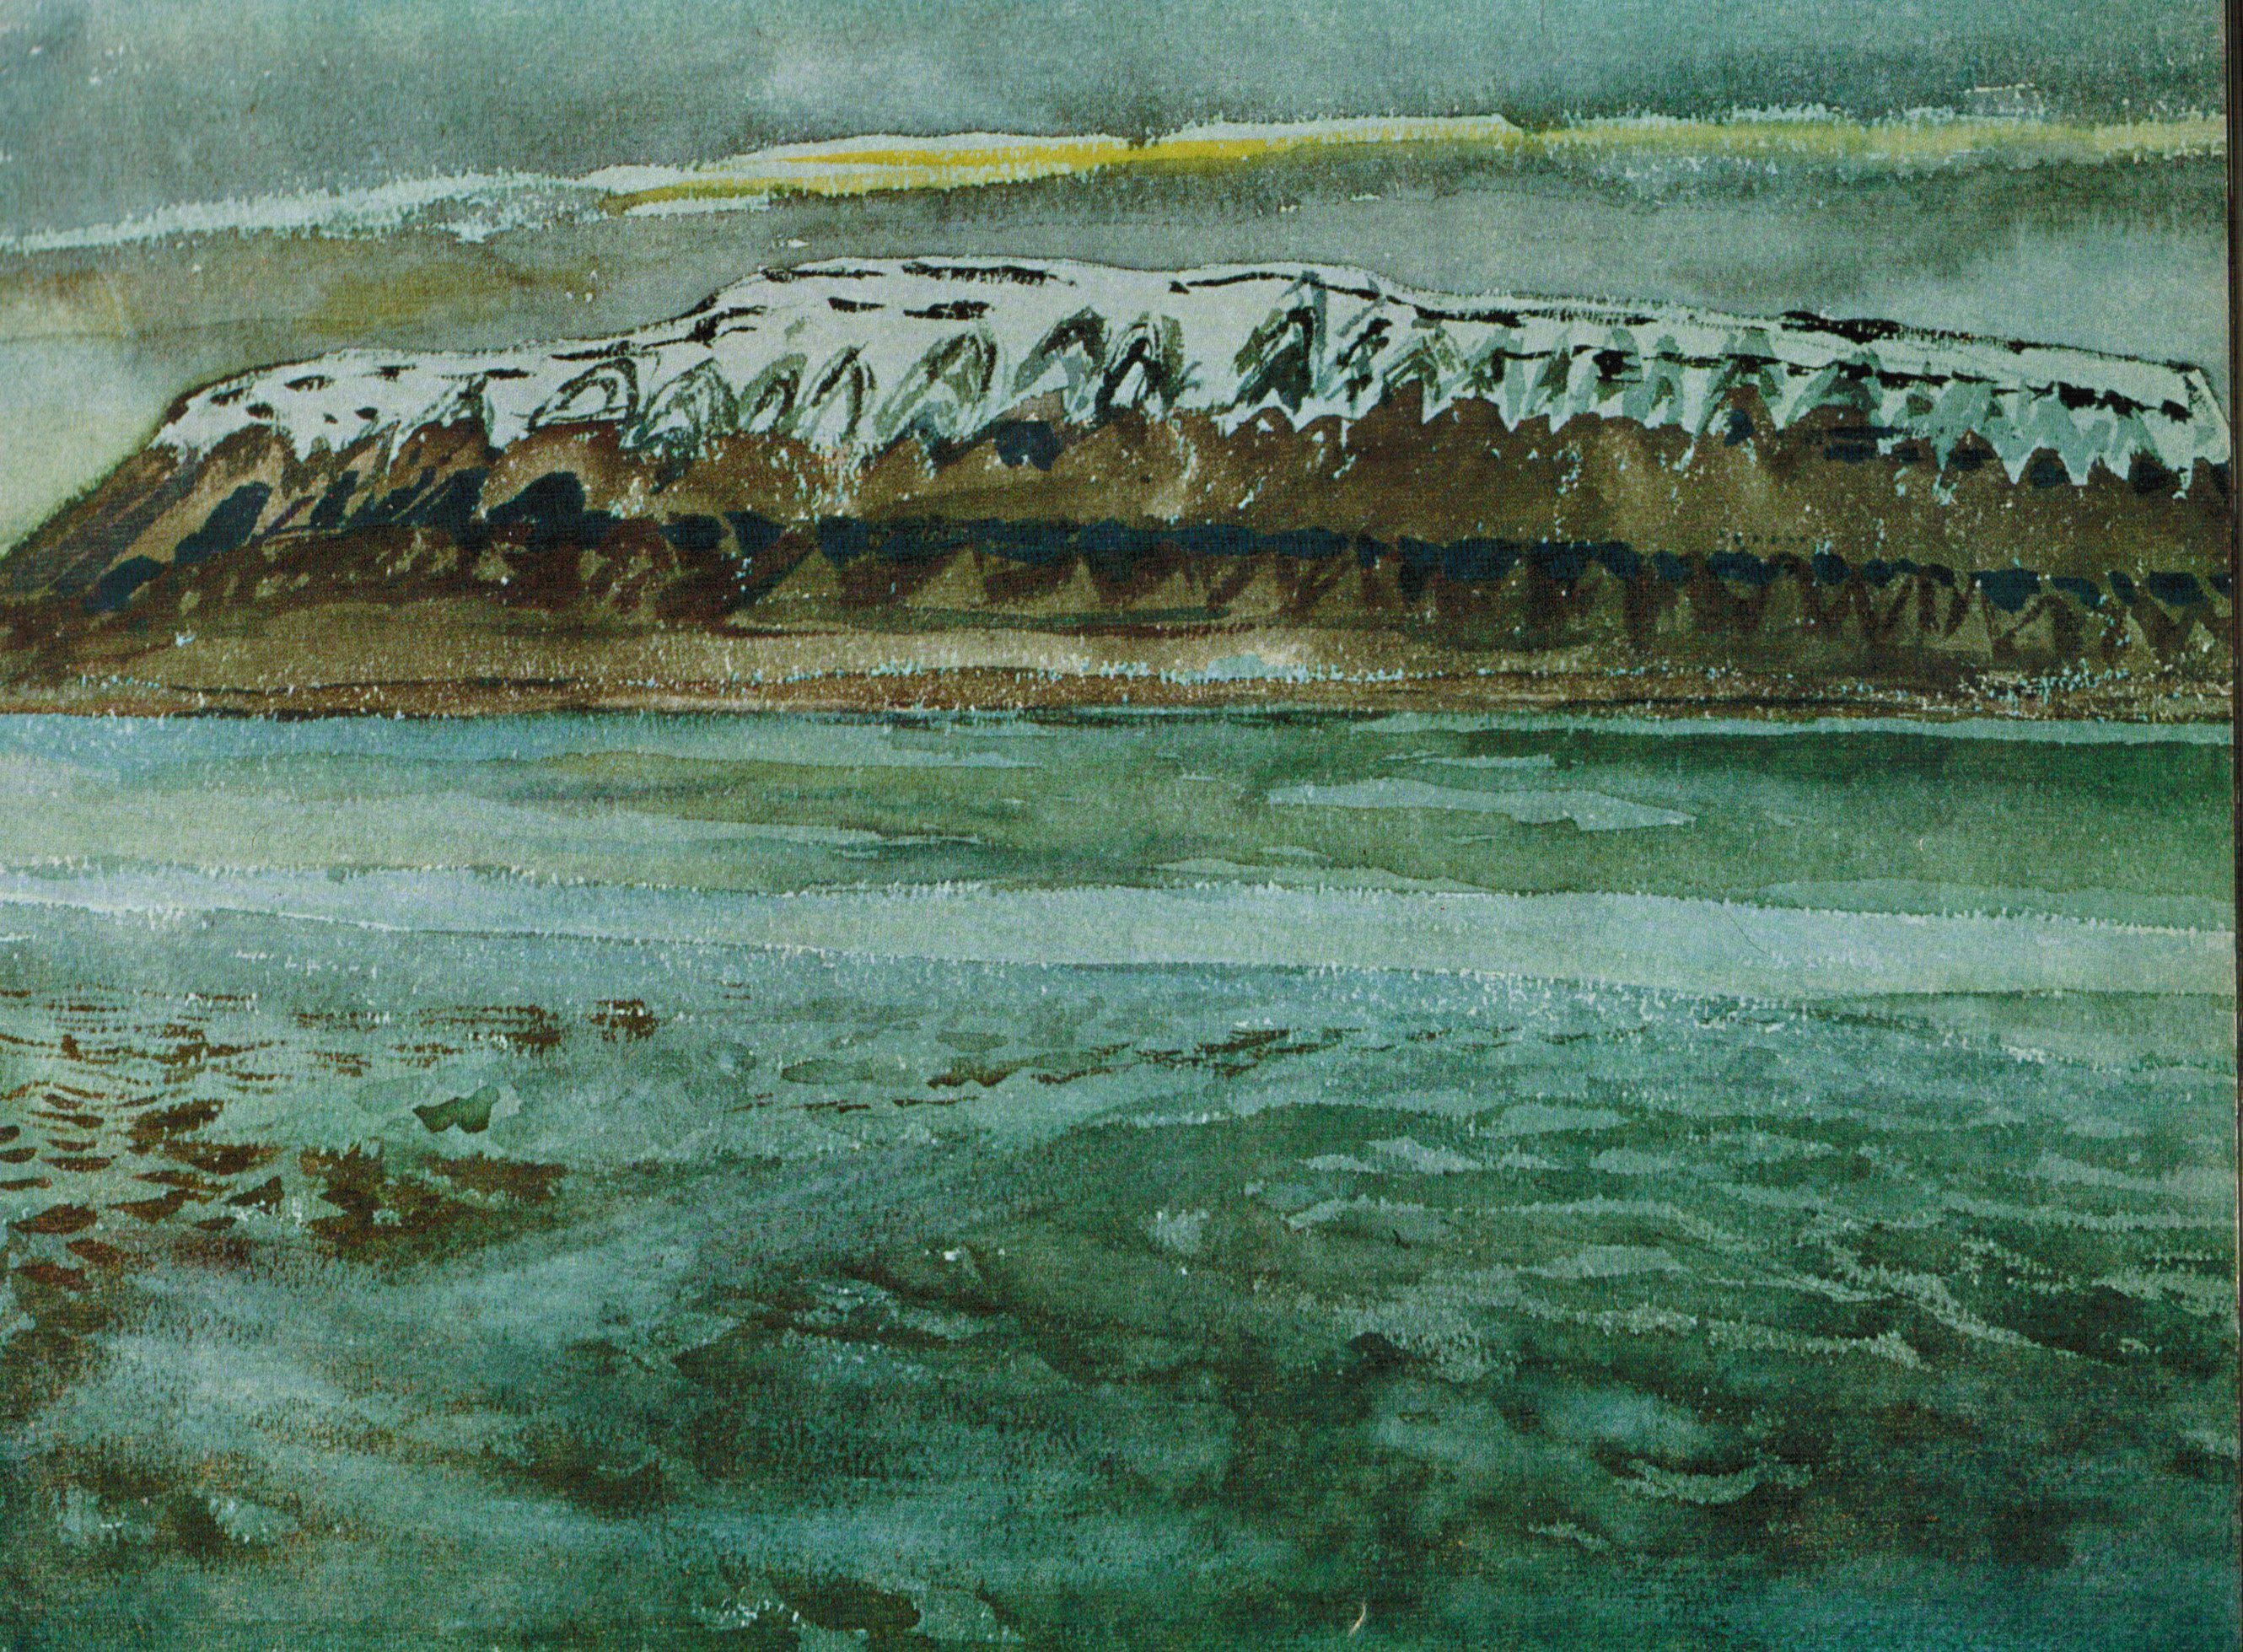 Painting by F H  Varley from Edmund Carpenter's Eskimo (University of Toronto Press, 1959)